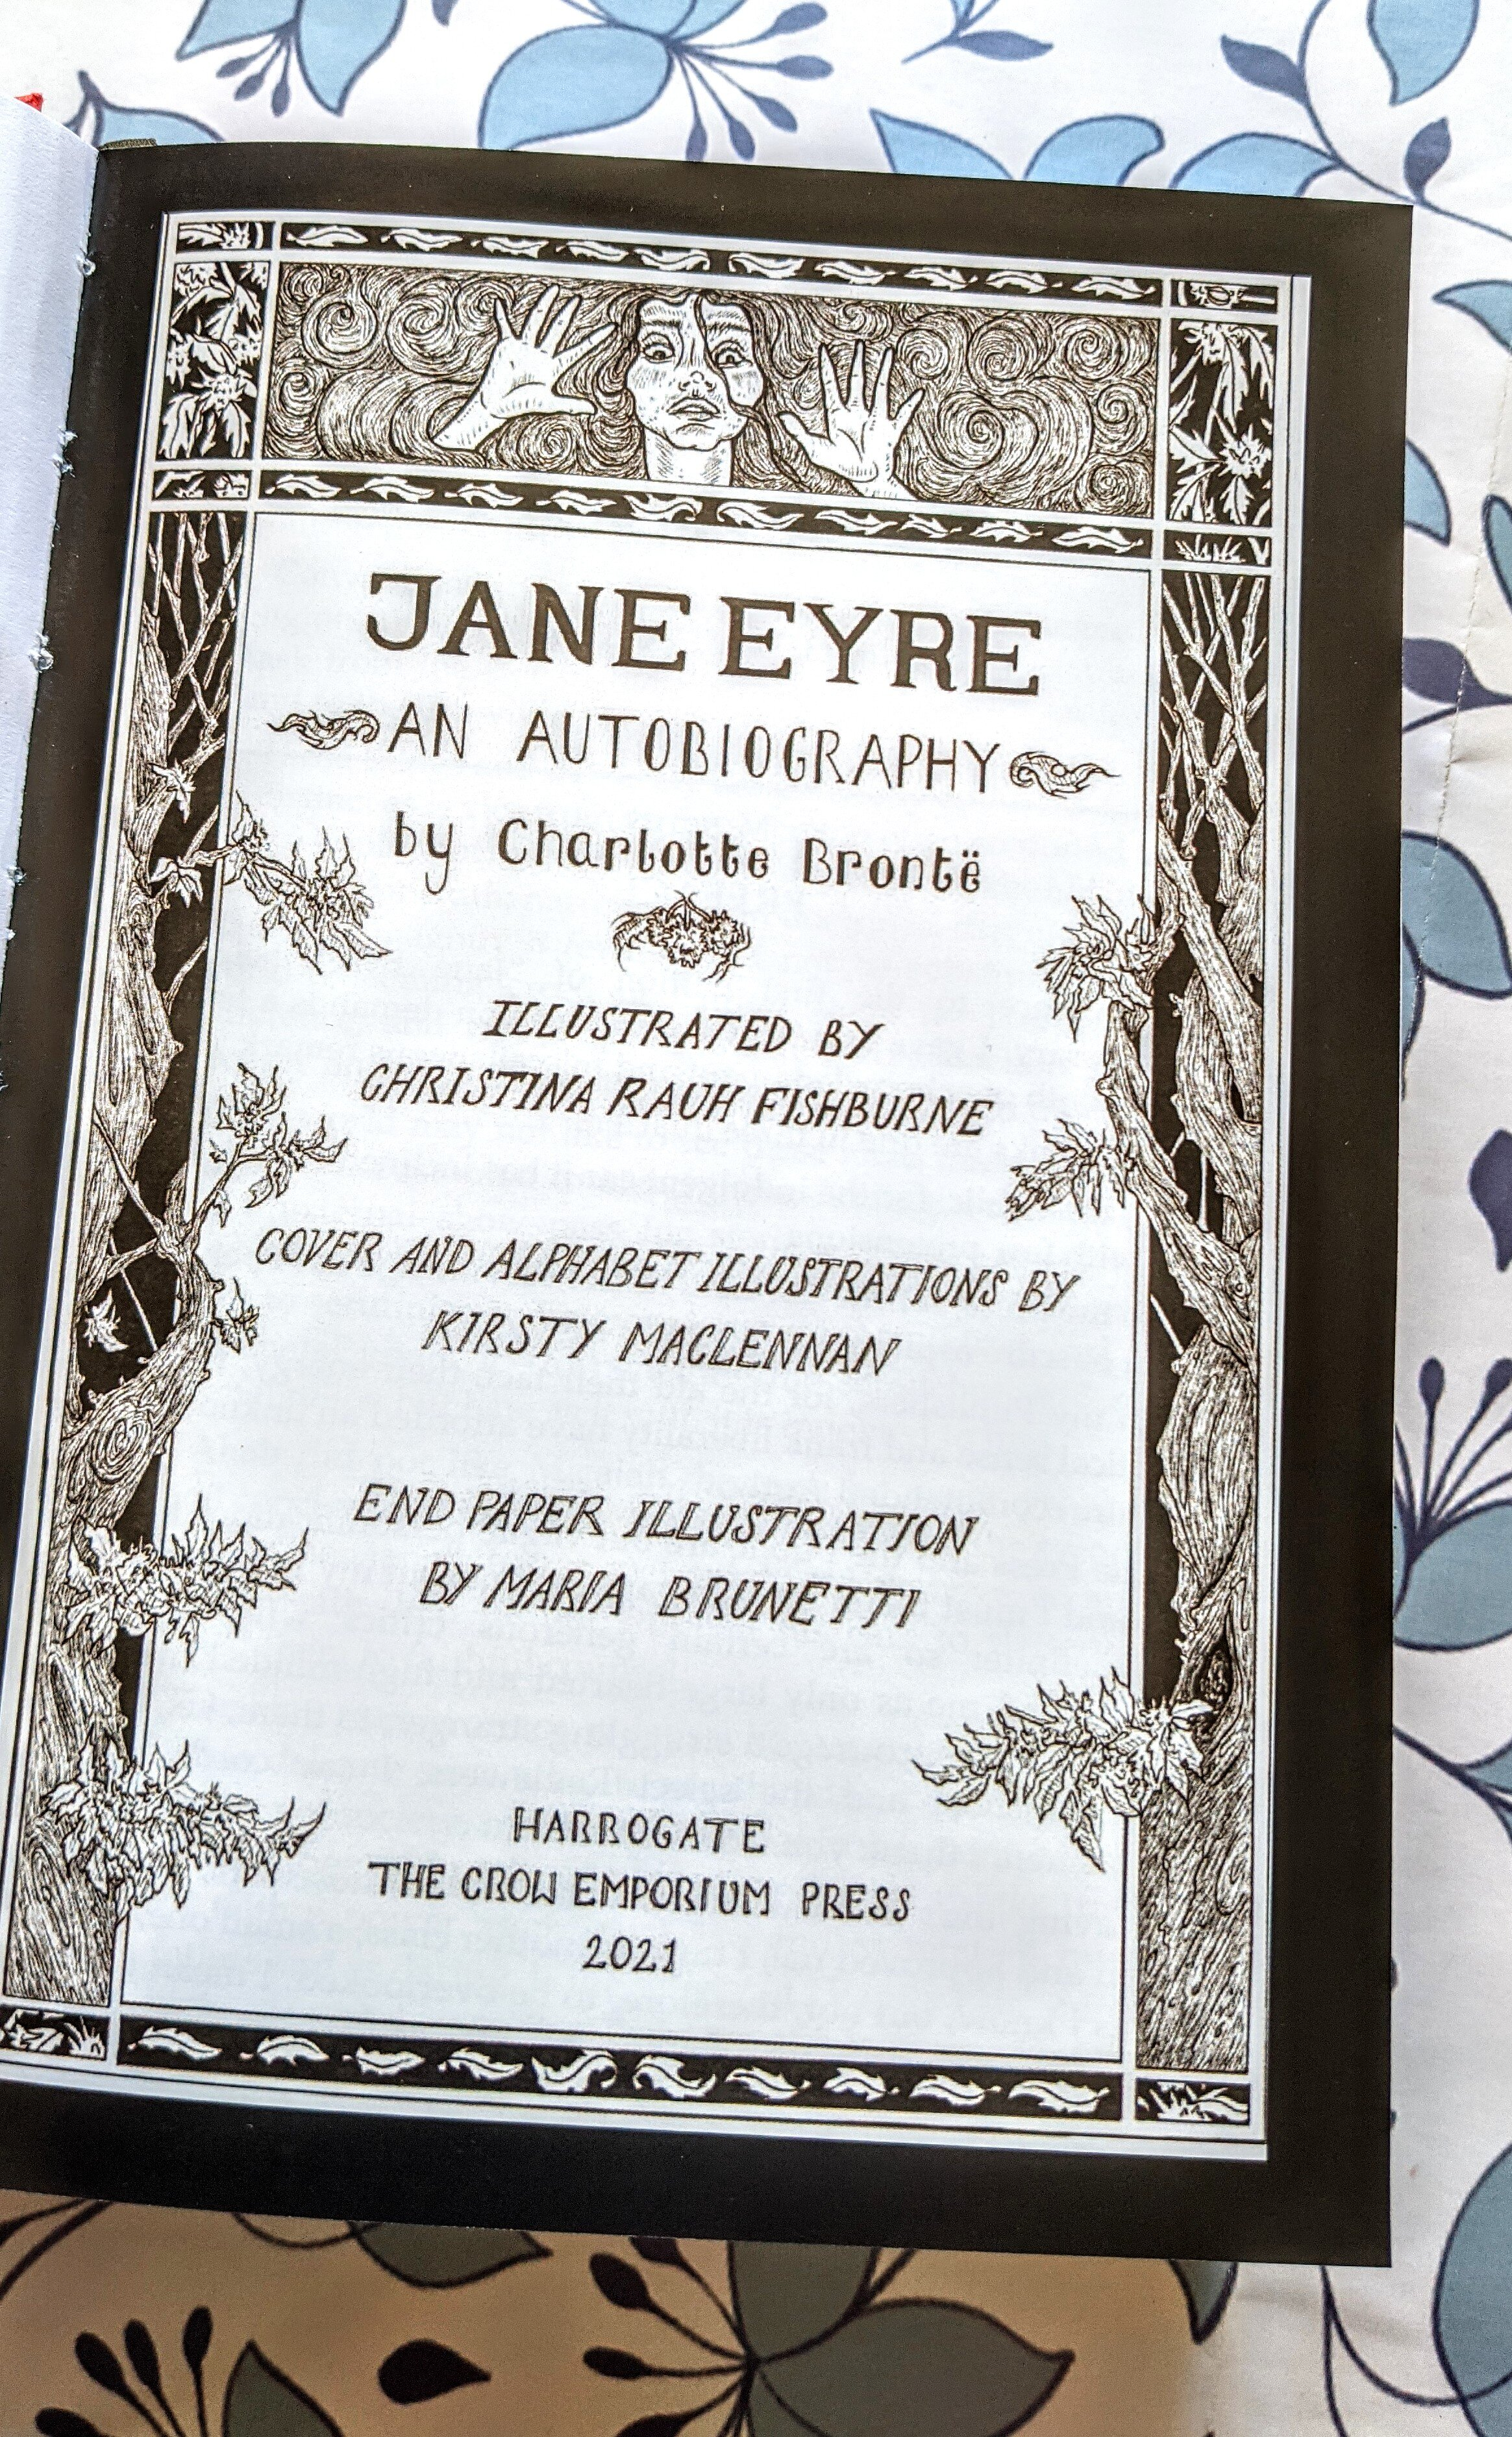 Jane Eyre by Charlotte Bronte - Illustrated. The Crow Emporium Press  Edition — The Crow Emporium